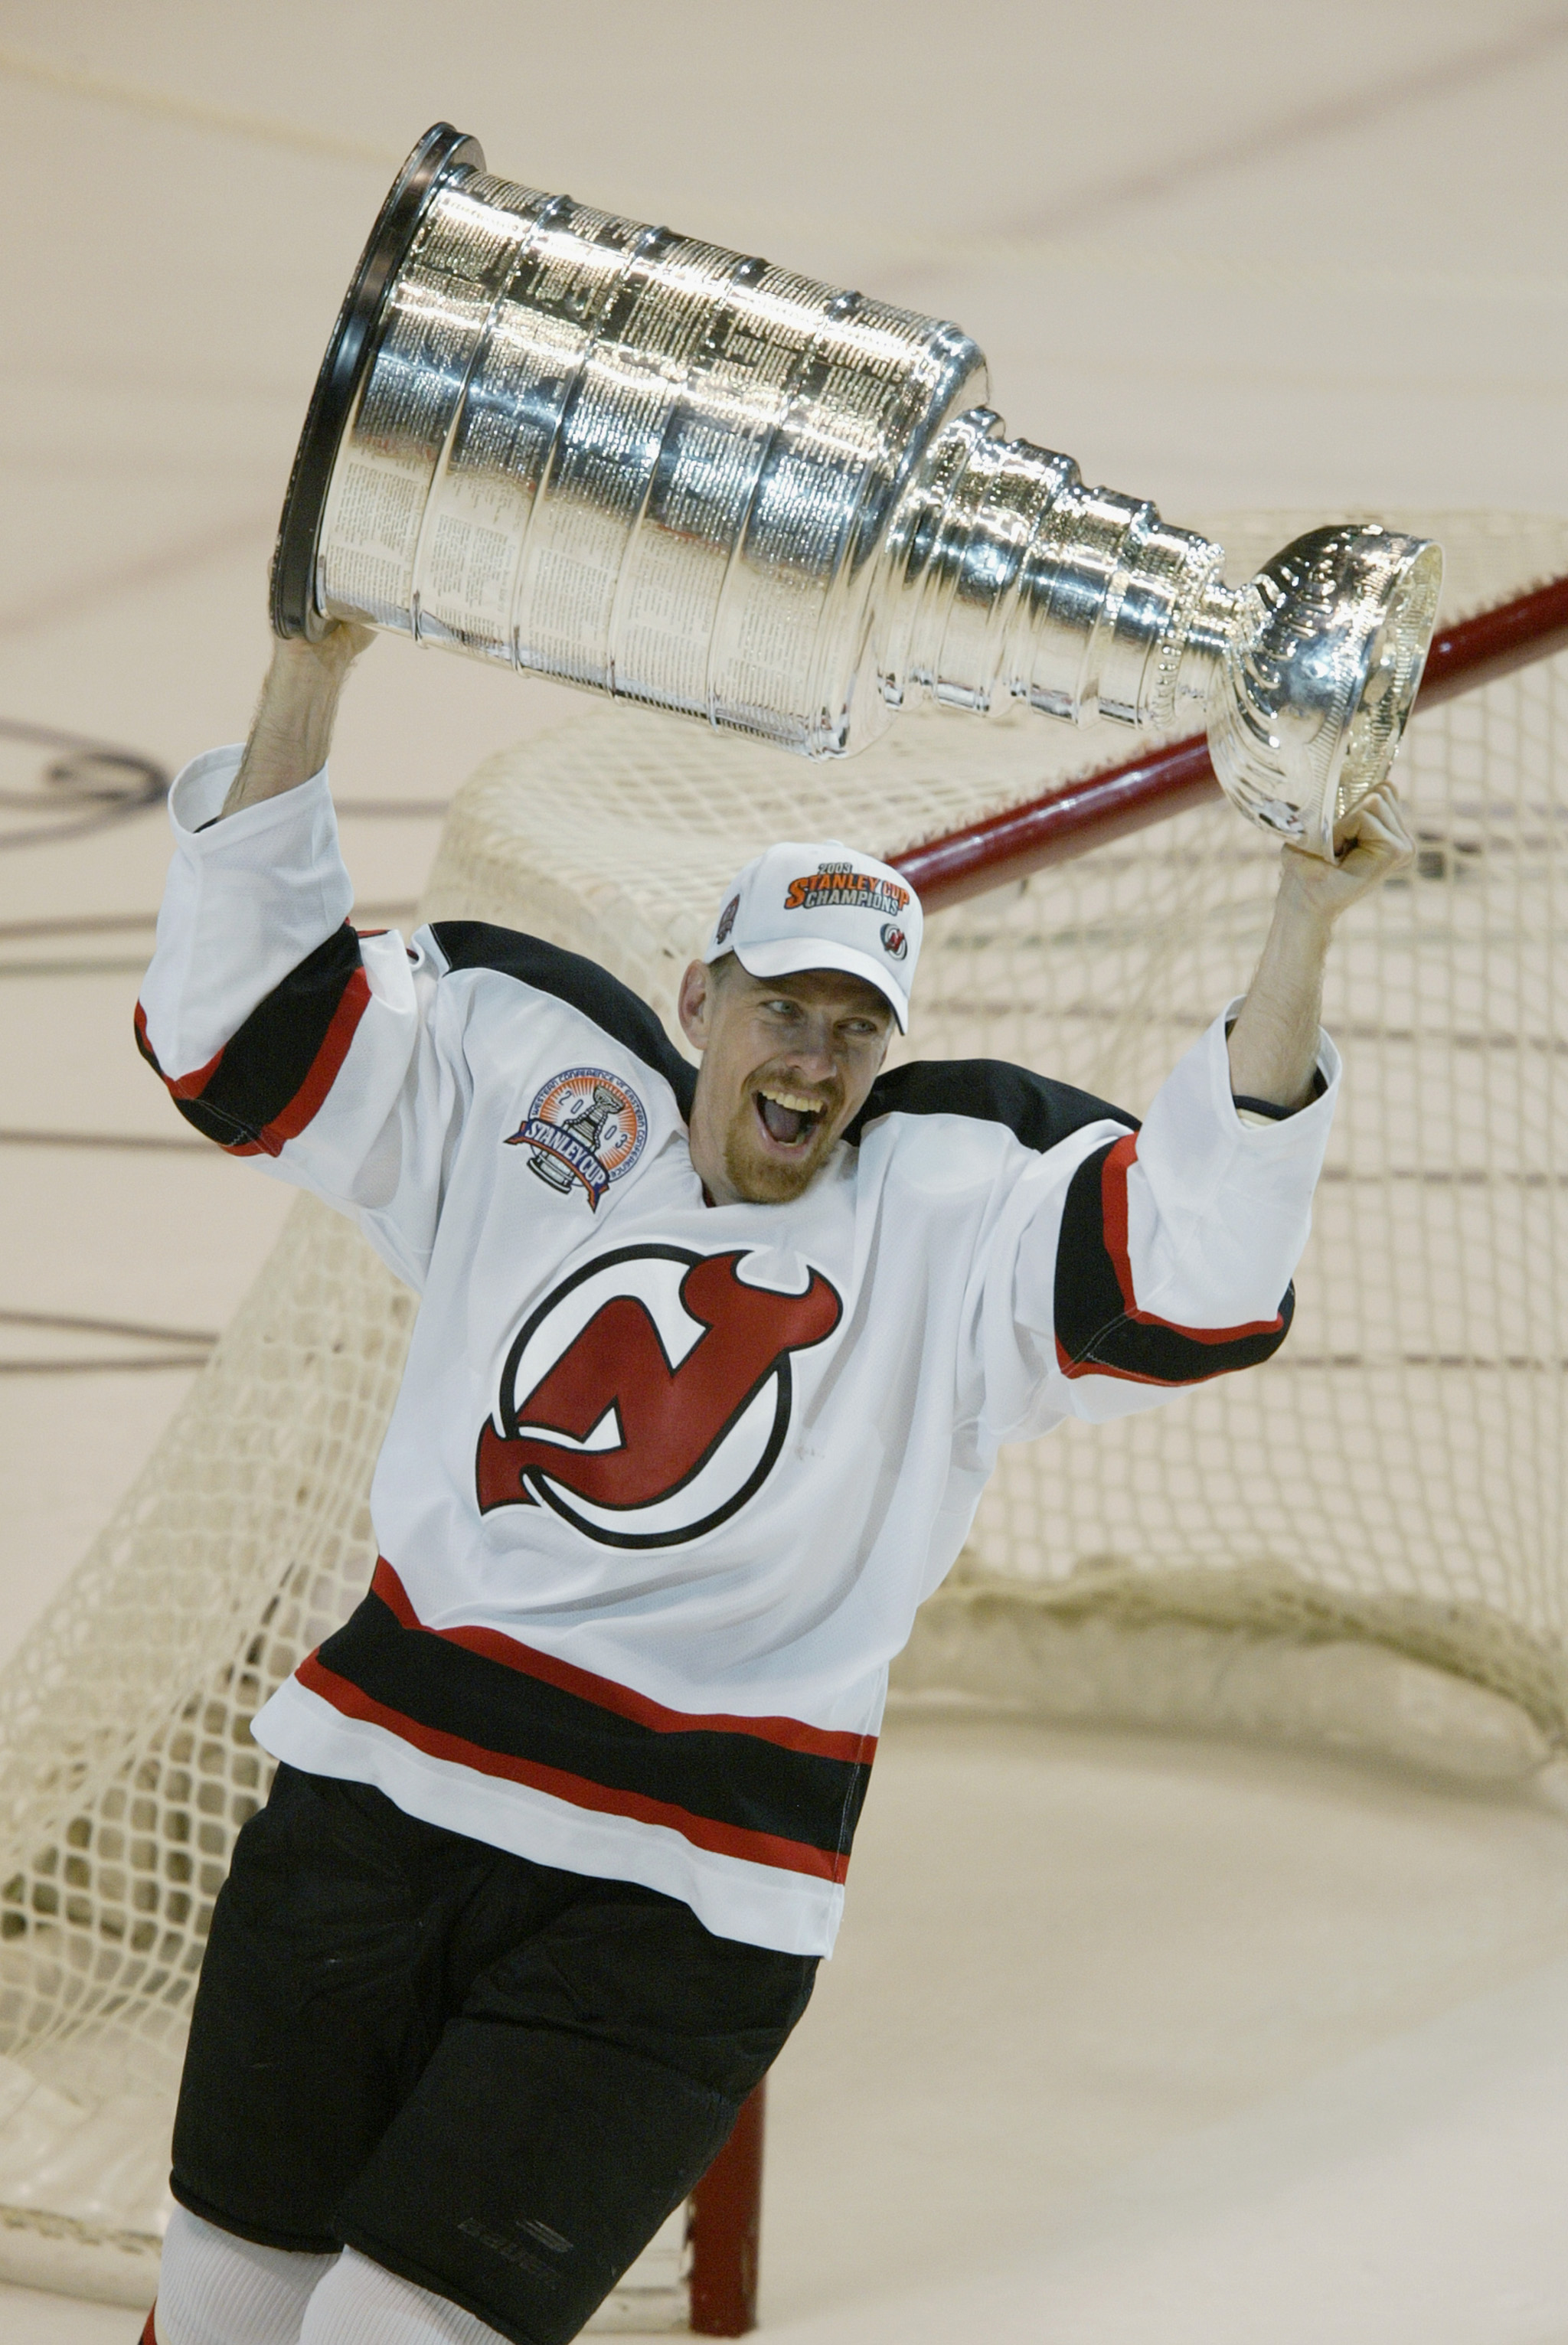 EAST RUTHERFORD, NJ - JUNE 9:   Joe Nieuwendyk #25 of the New Jersey Devils raises the Stanley Cup after defeating the Mighty Ducks of Anaheim in game seven of the 2003 Stanley Cup Finals at Continental Airlines Arena on June 9, 2003 in East Rutherford, N